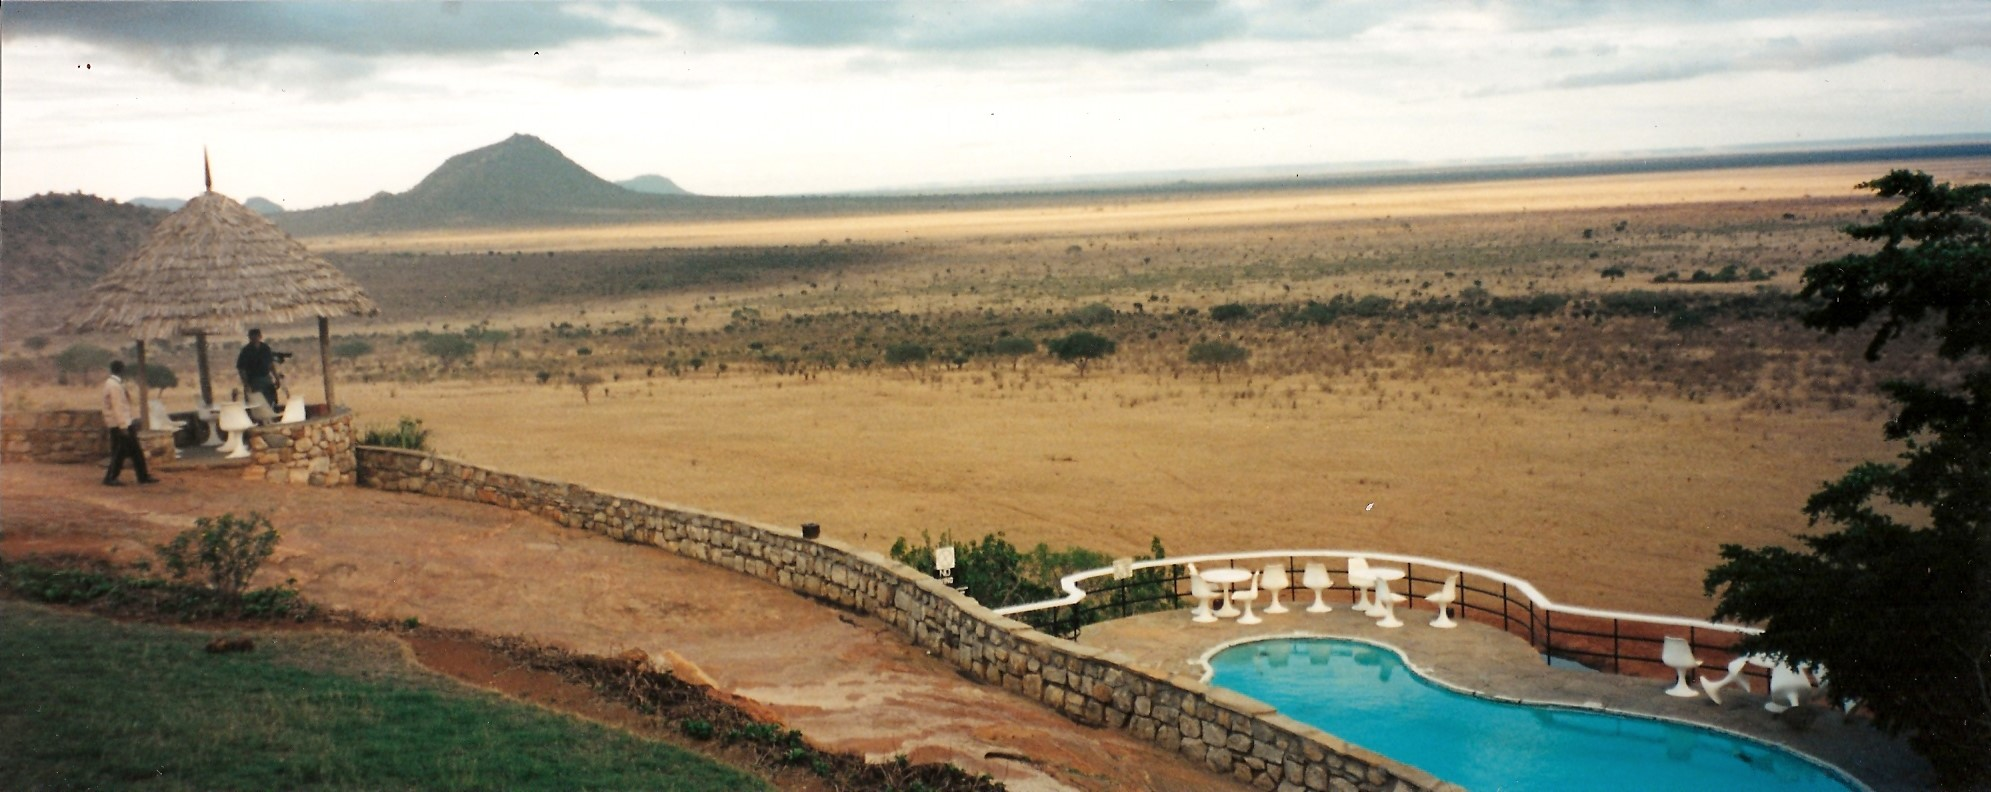 Tsavo East - Another ice-cold Tusker beer for you, sir?